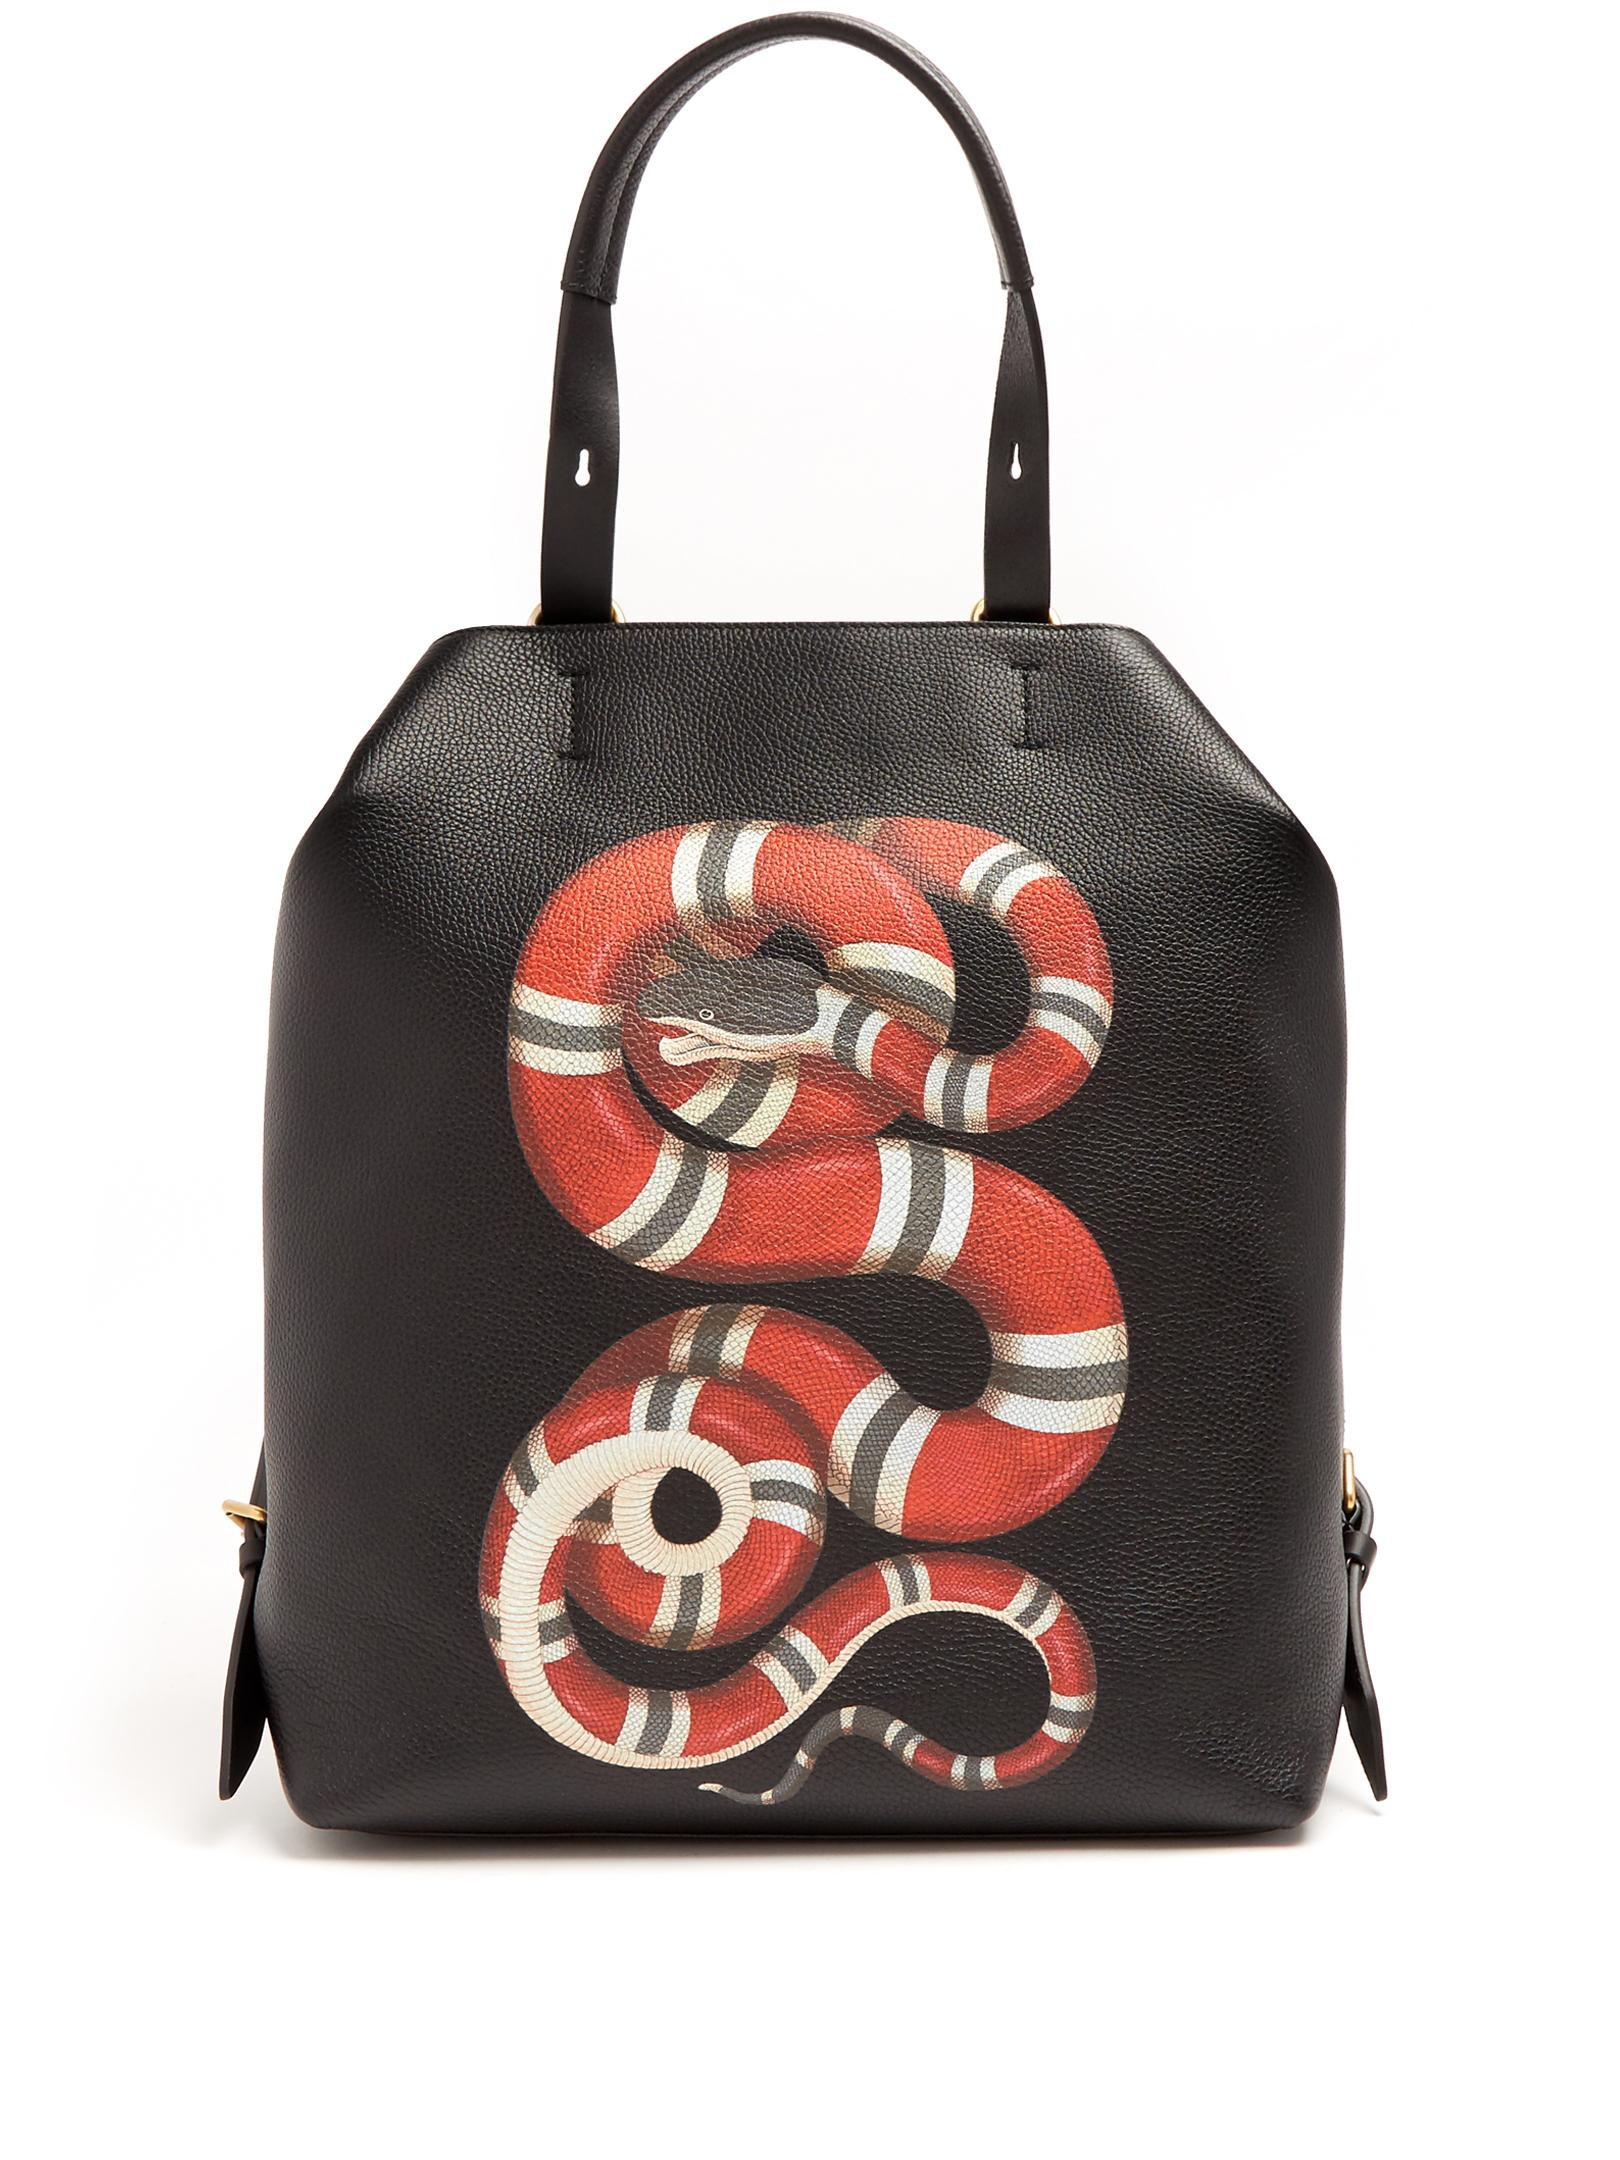 7d08b2621e10 Red And Black Gucci Backpack- Fenix Toulouse Handball